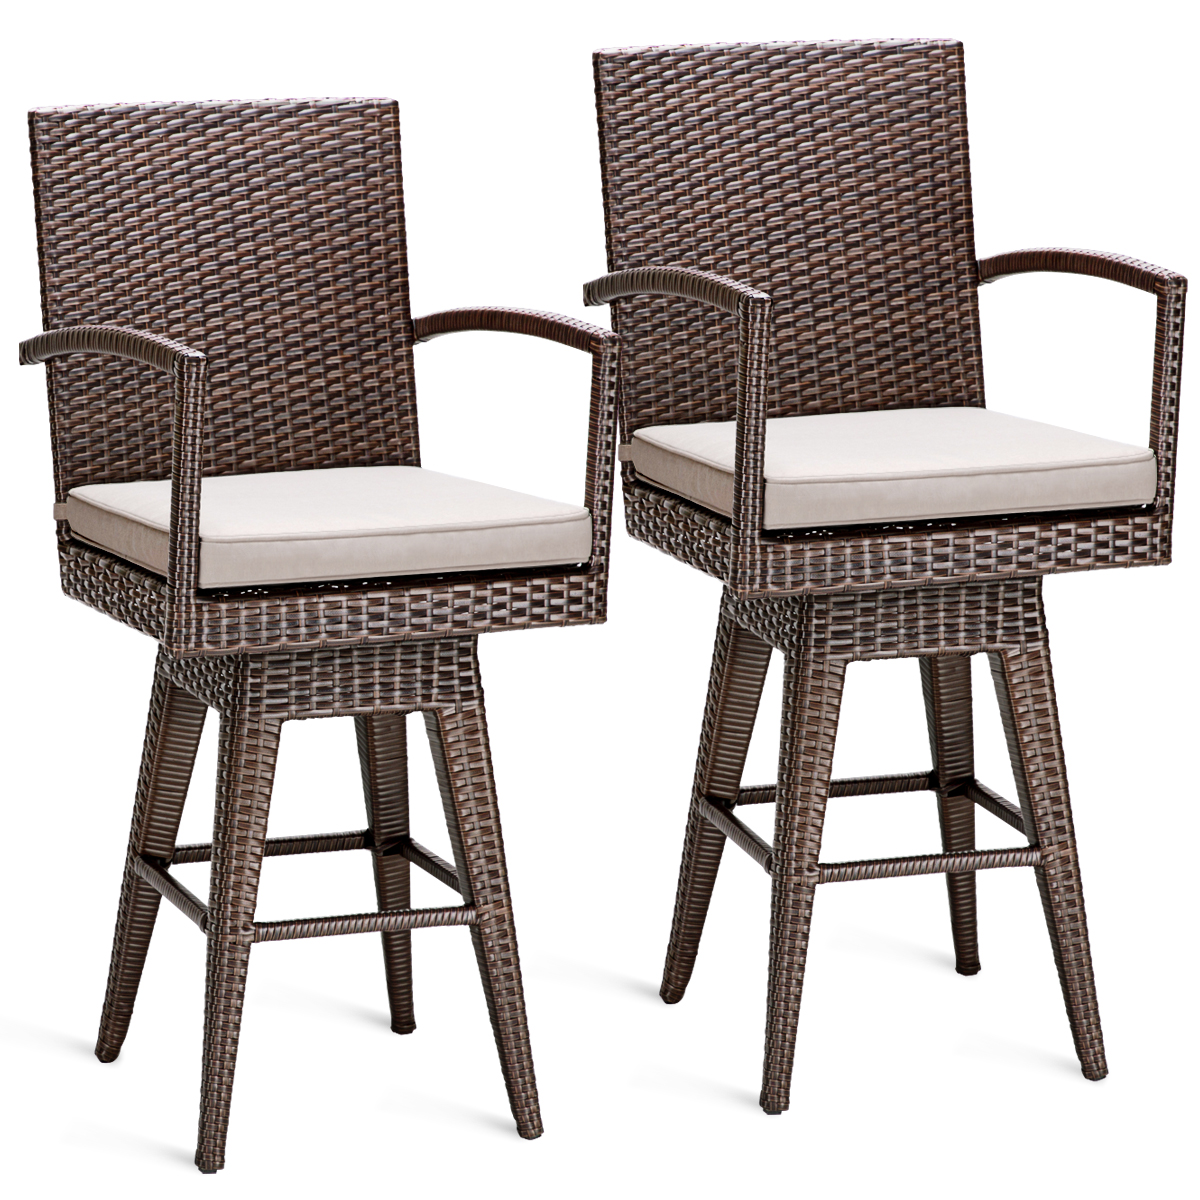 Costway 2PCS Rattan Swivel Bar Stool Chair Patio Backyard Furniture Seat Cushion